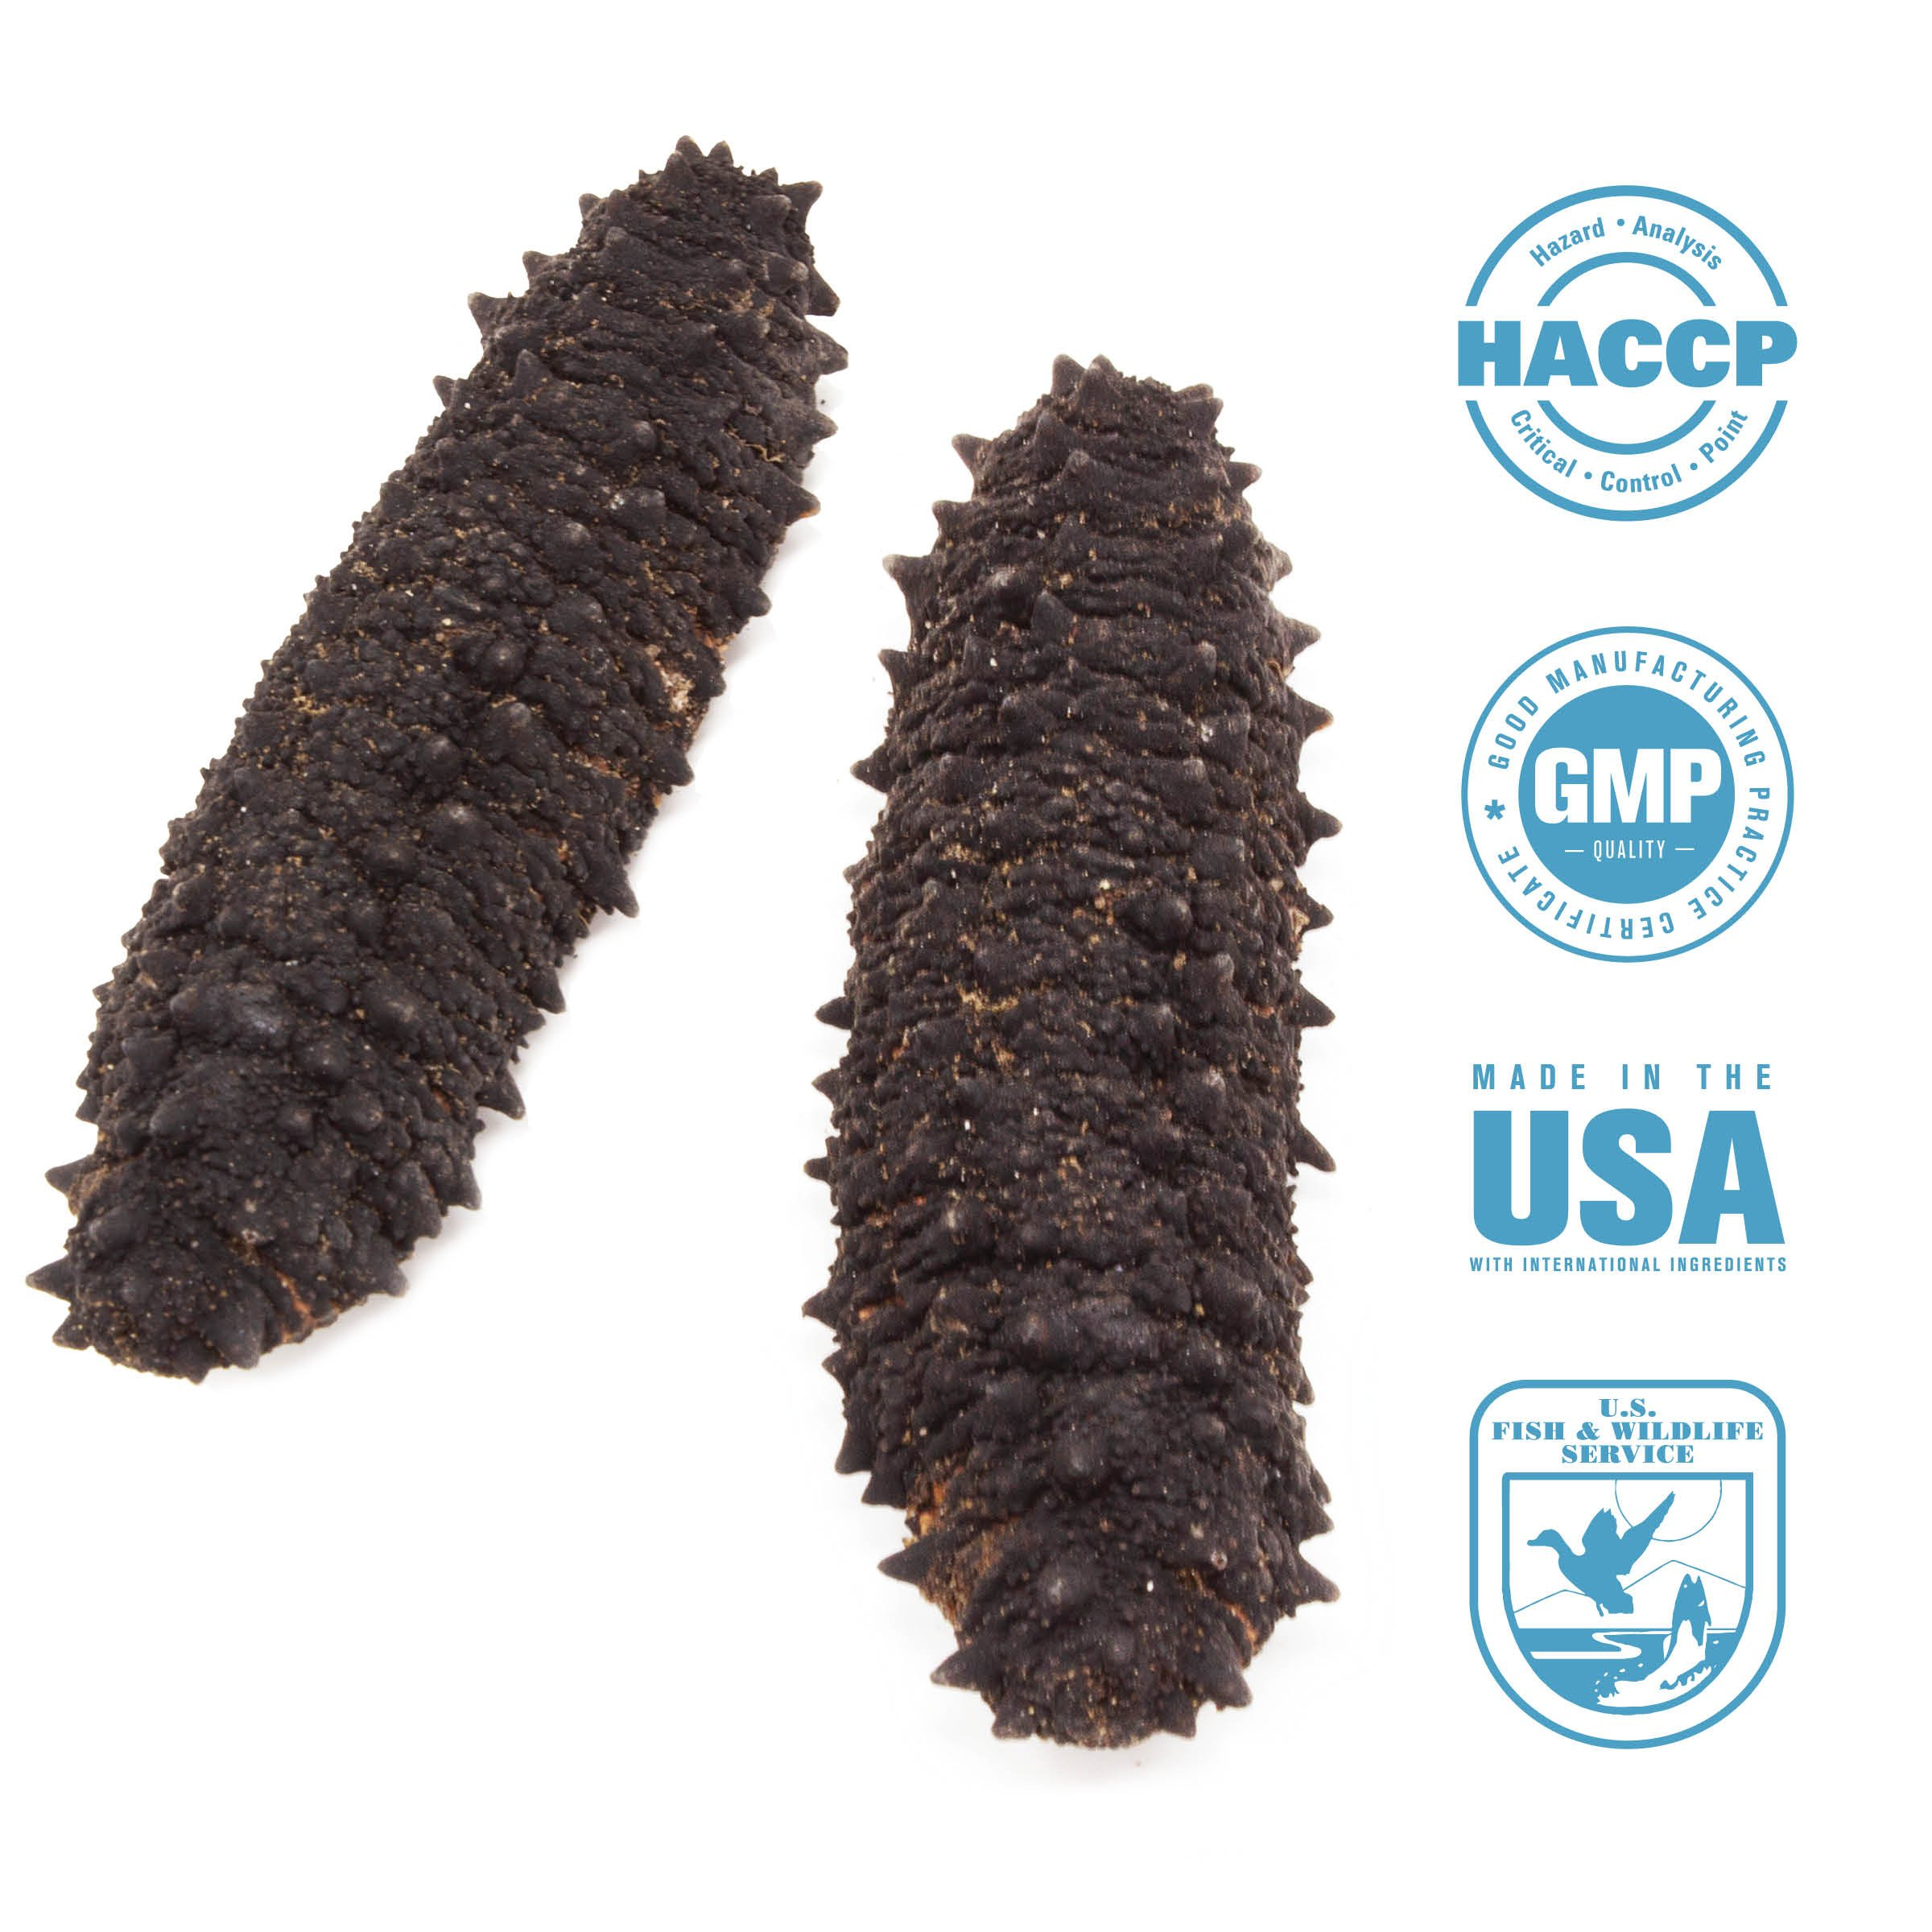 SB Organics Spiny Black Sea Cucumber - Wild Caught Sea Cucumber Dried All Natural Nutritious - 8 oz